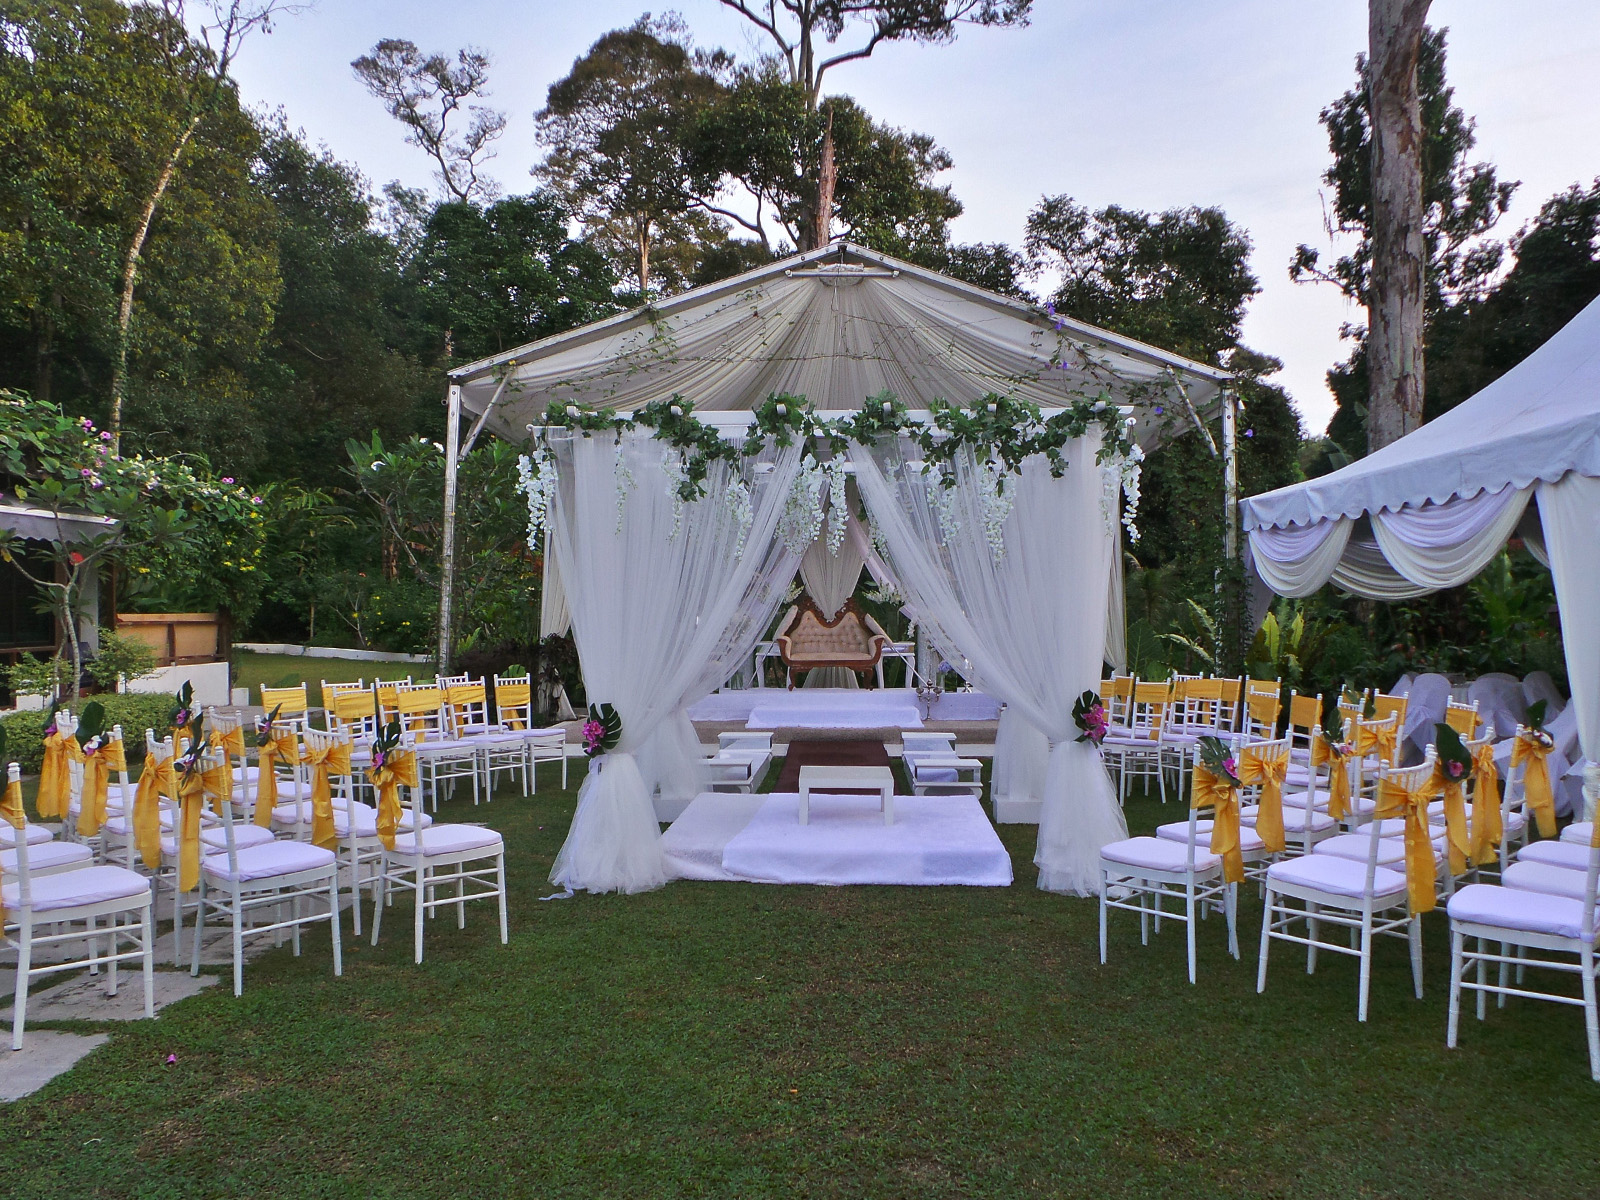 Outdoor Wedding Venues: 21 Beautiful Outdoor Venues In Malaysia For The Ultimate